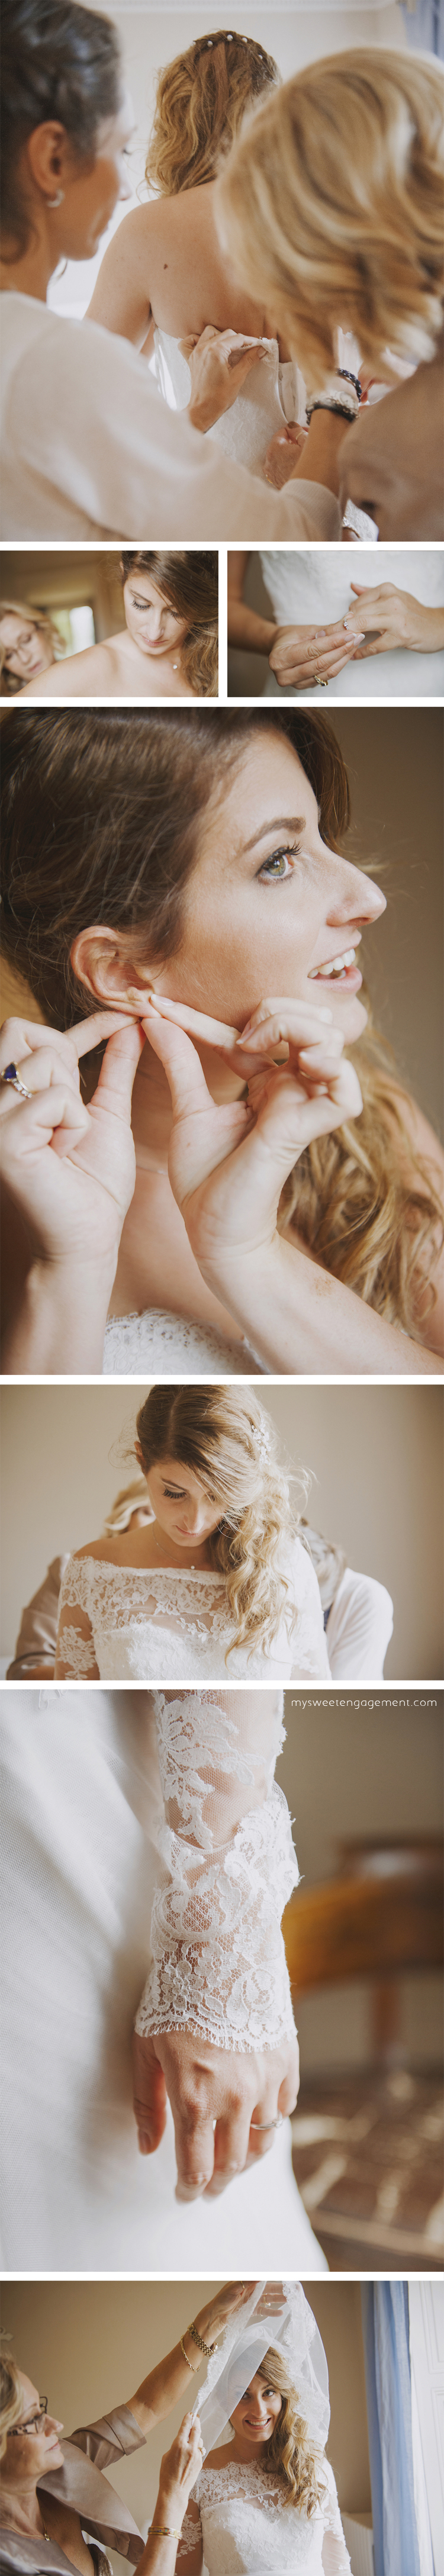 bride getting ready photos - mother of the bride - wedding blog - my sweet engagement